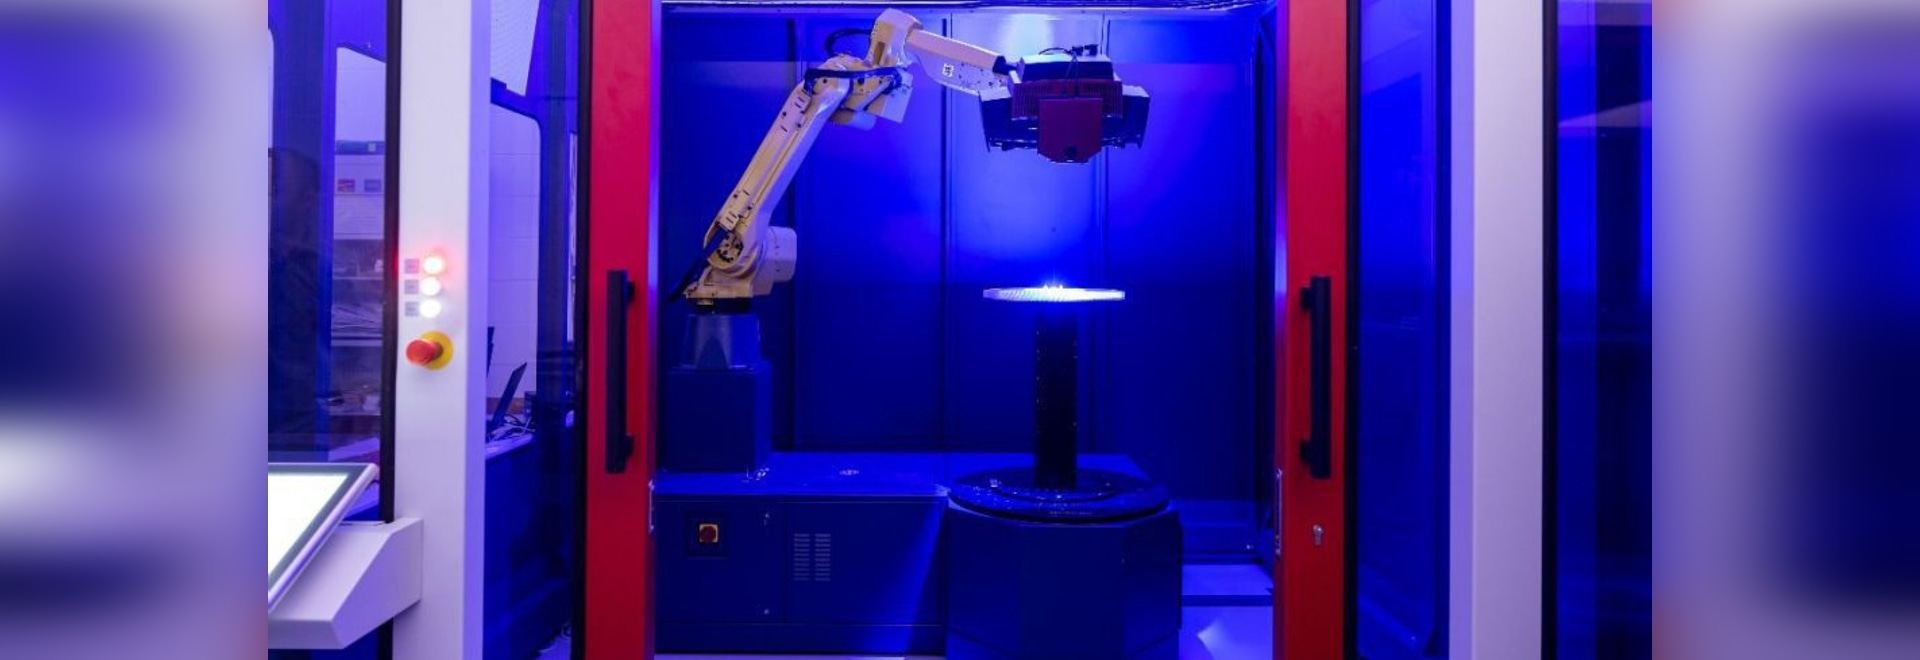 Physical Digital achieves Nadcap accreditation for 3DSL scanning service